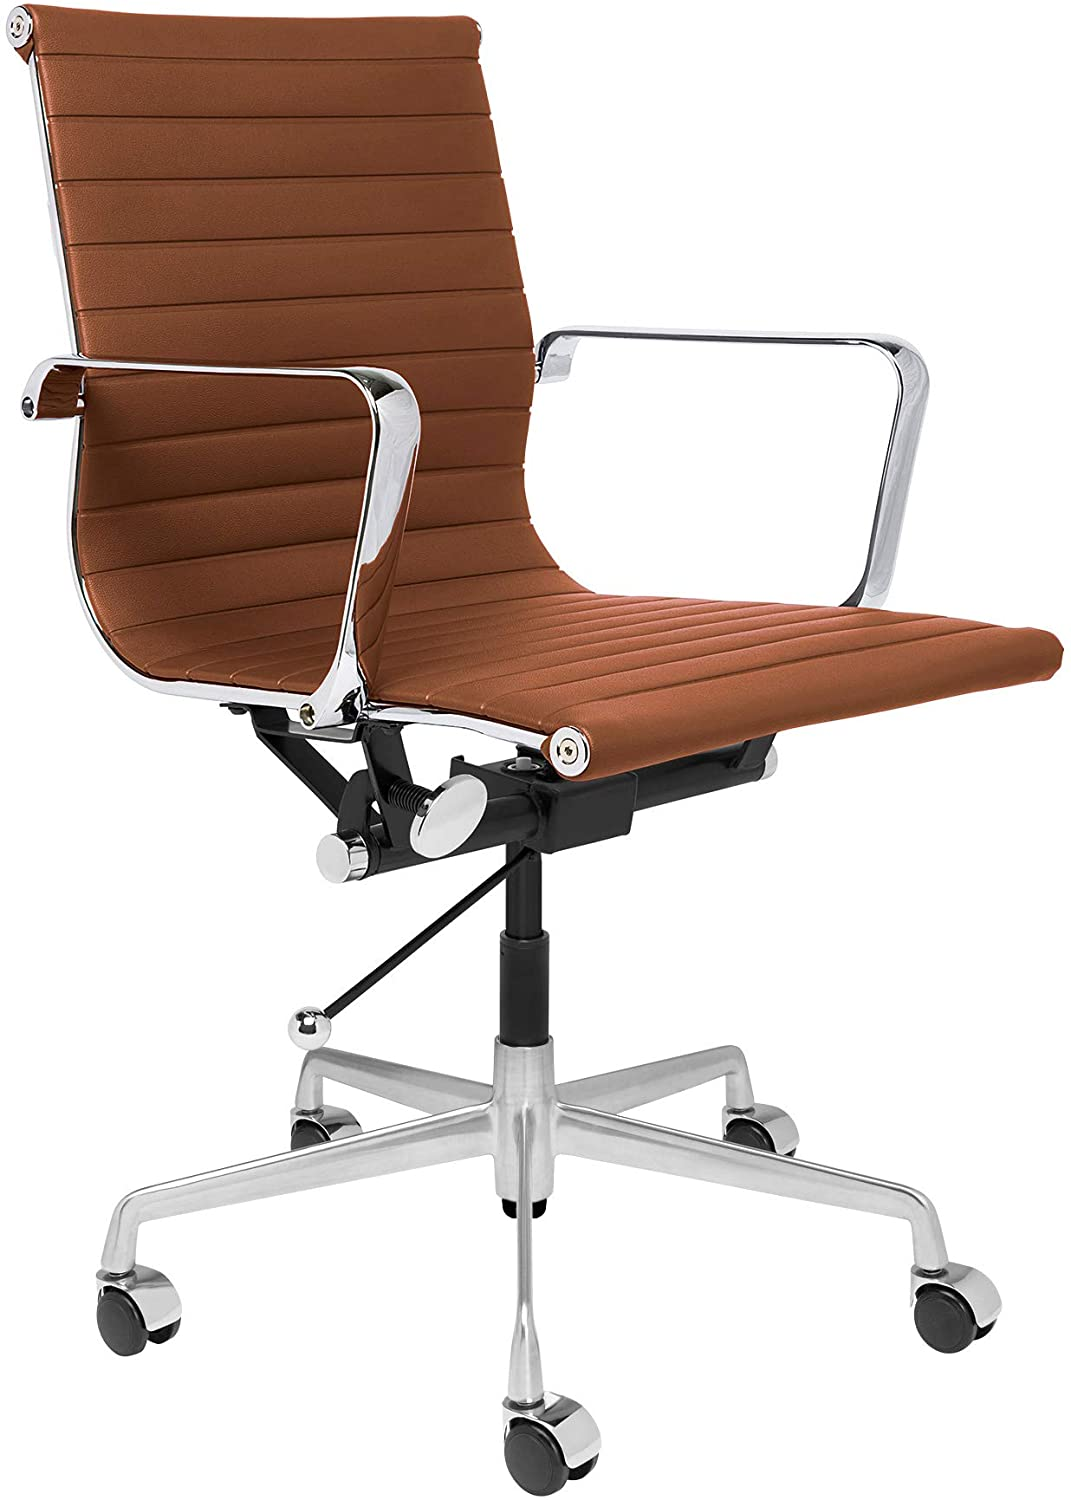 SOHO Ribbed Management Office Chair (Brown)